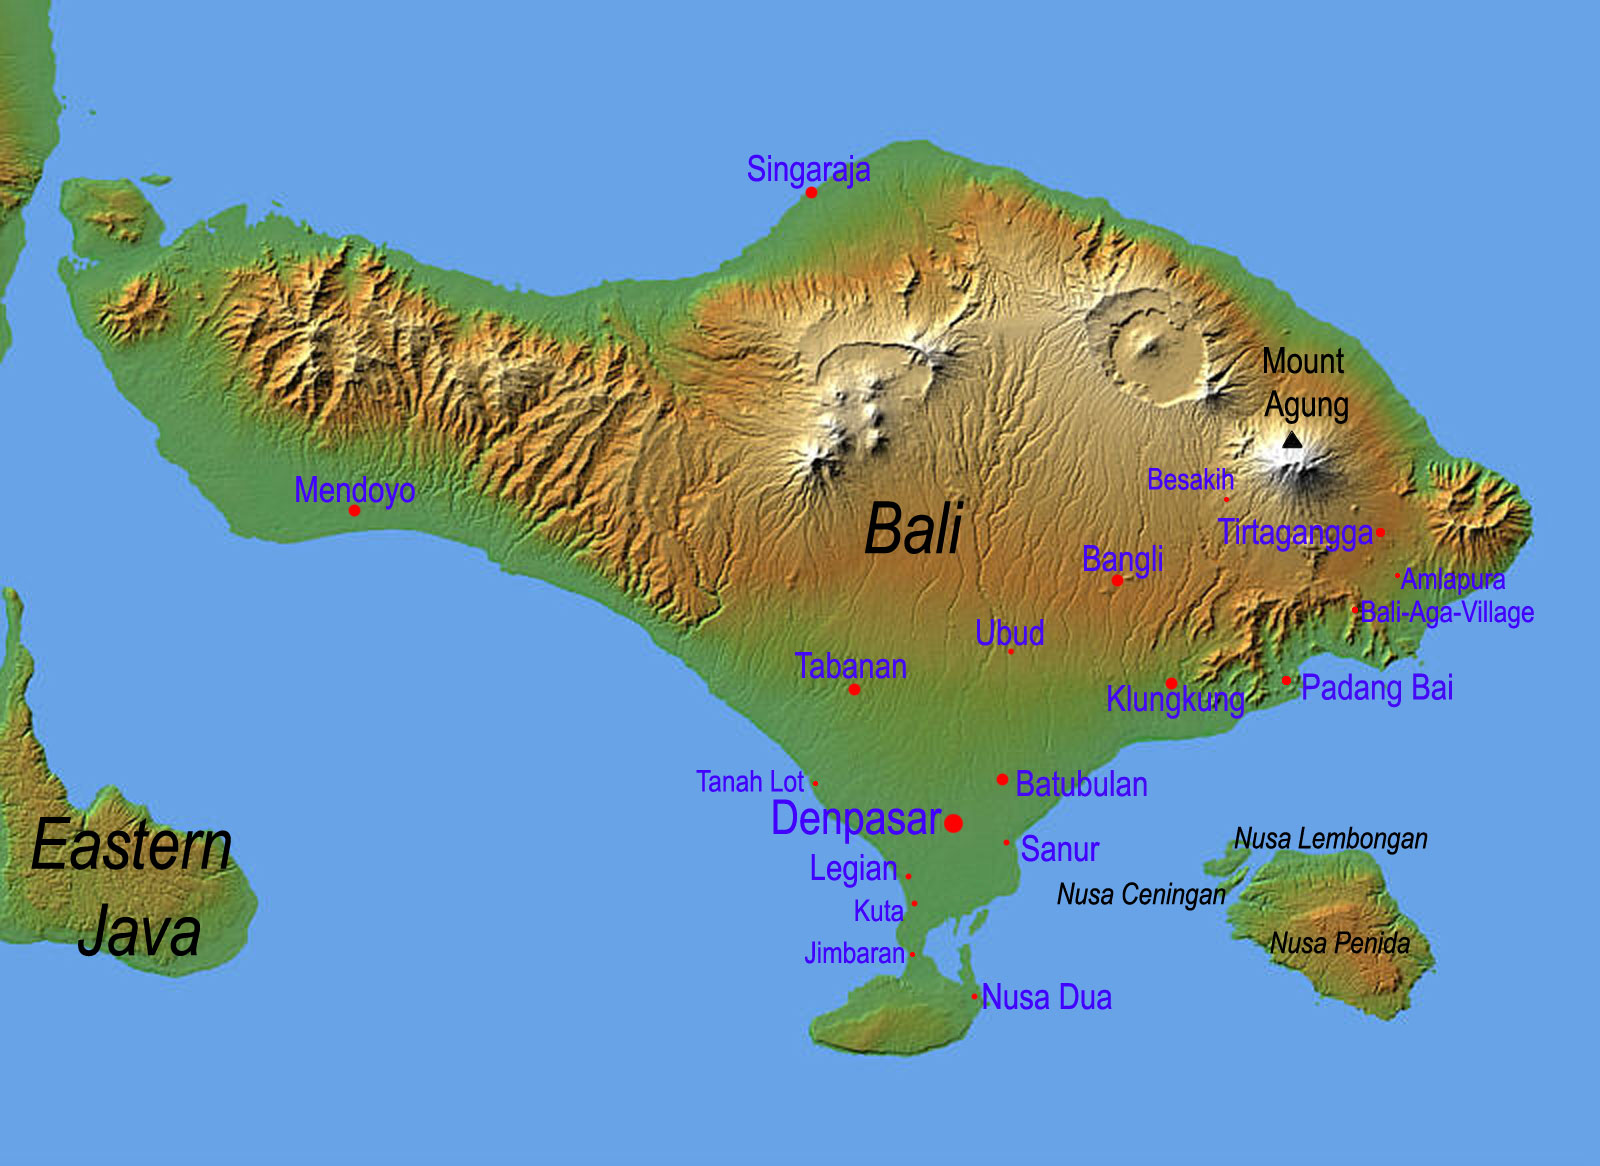 Bali tourism board about bali bali geography bali geography map gumiabroncs Images